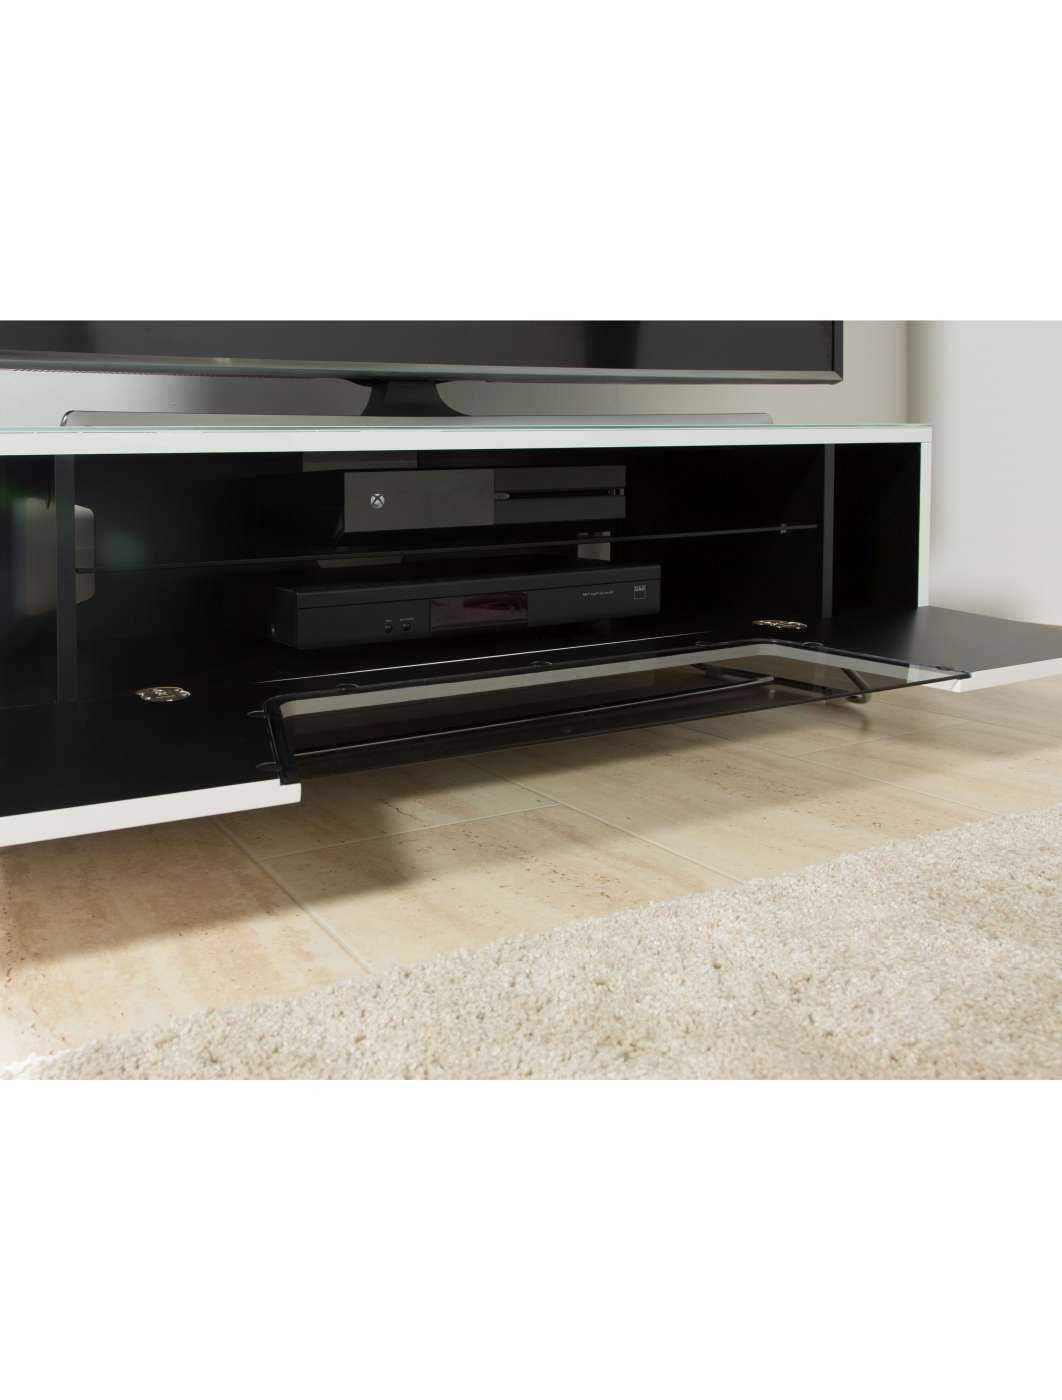 Alphason Chromium Tv Stand Cro2 1200Cb Wht | 121 Tv Mounts Within Alphason Tv Cabinets (View 10 of 20)